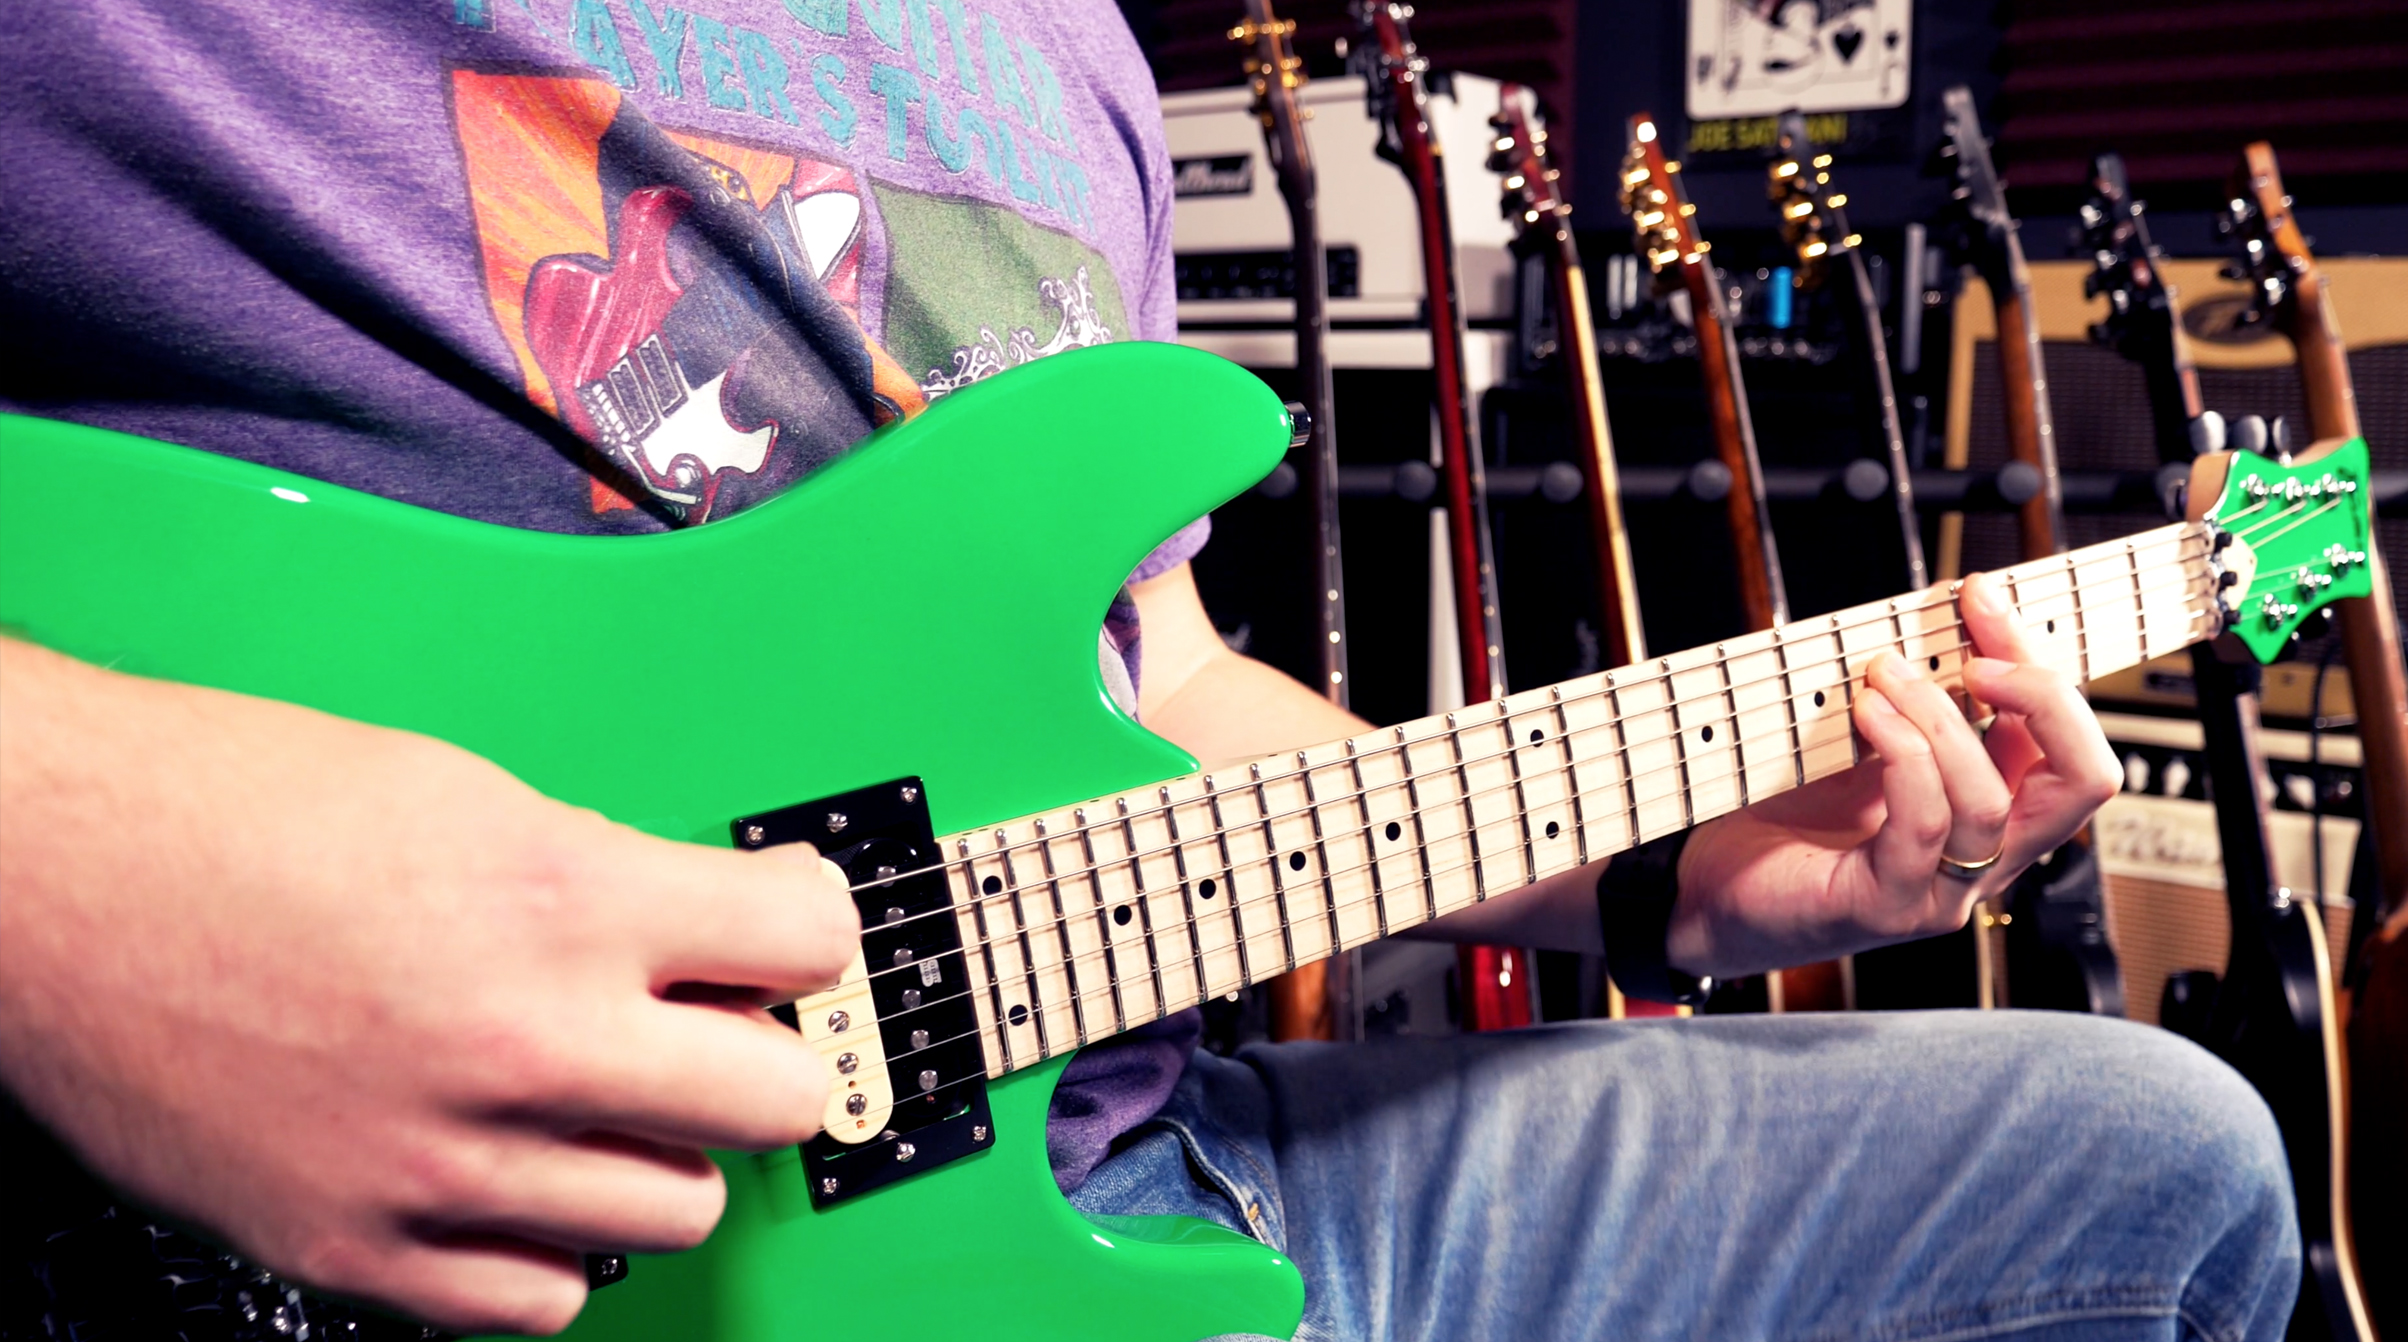 MELODIC MINOR SCALE - The Melodic Minor Scale is your first step into the world of becoming a more advanced guitarist from a music theory perspective, because it challenges your ear to absorb sound in a way that is probably not familiar to you. With just one note differentiating the Melodic Minor Scale from the Major Scale, you'll expand your pallet of musical exploration exponentially.